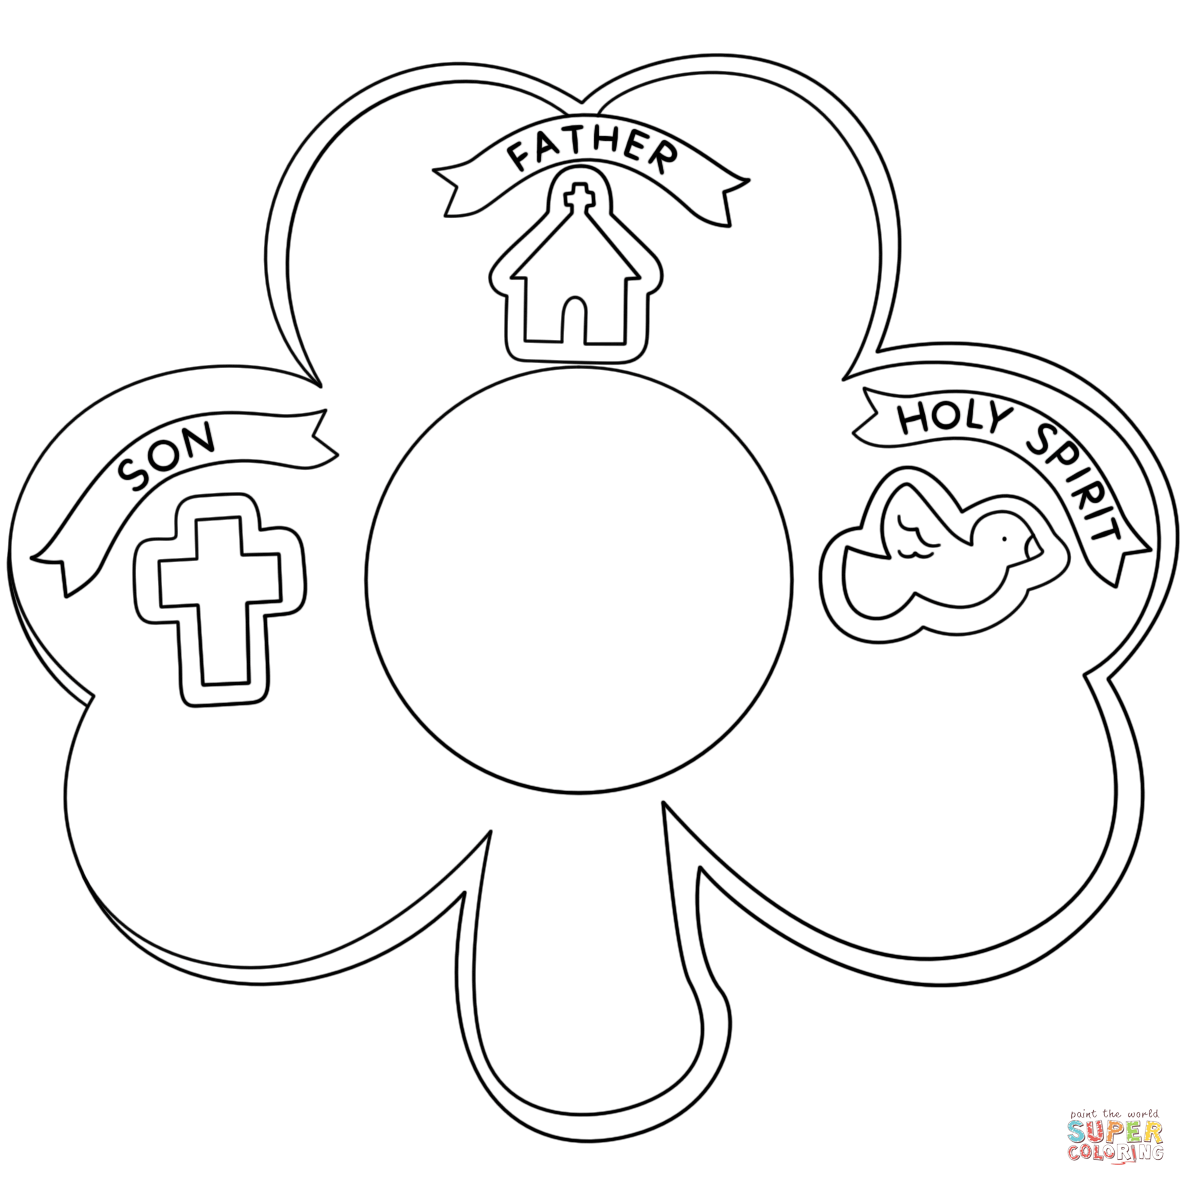 Shamrock Holy Trinity coloring page from Church category